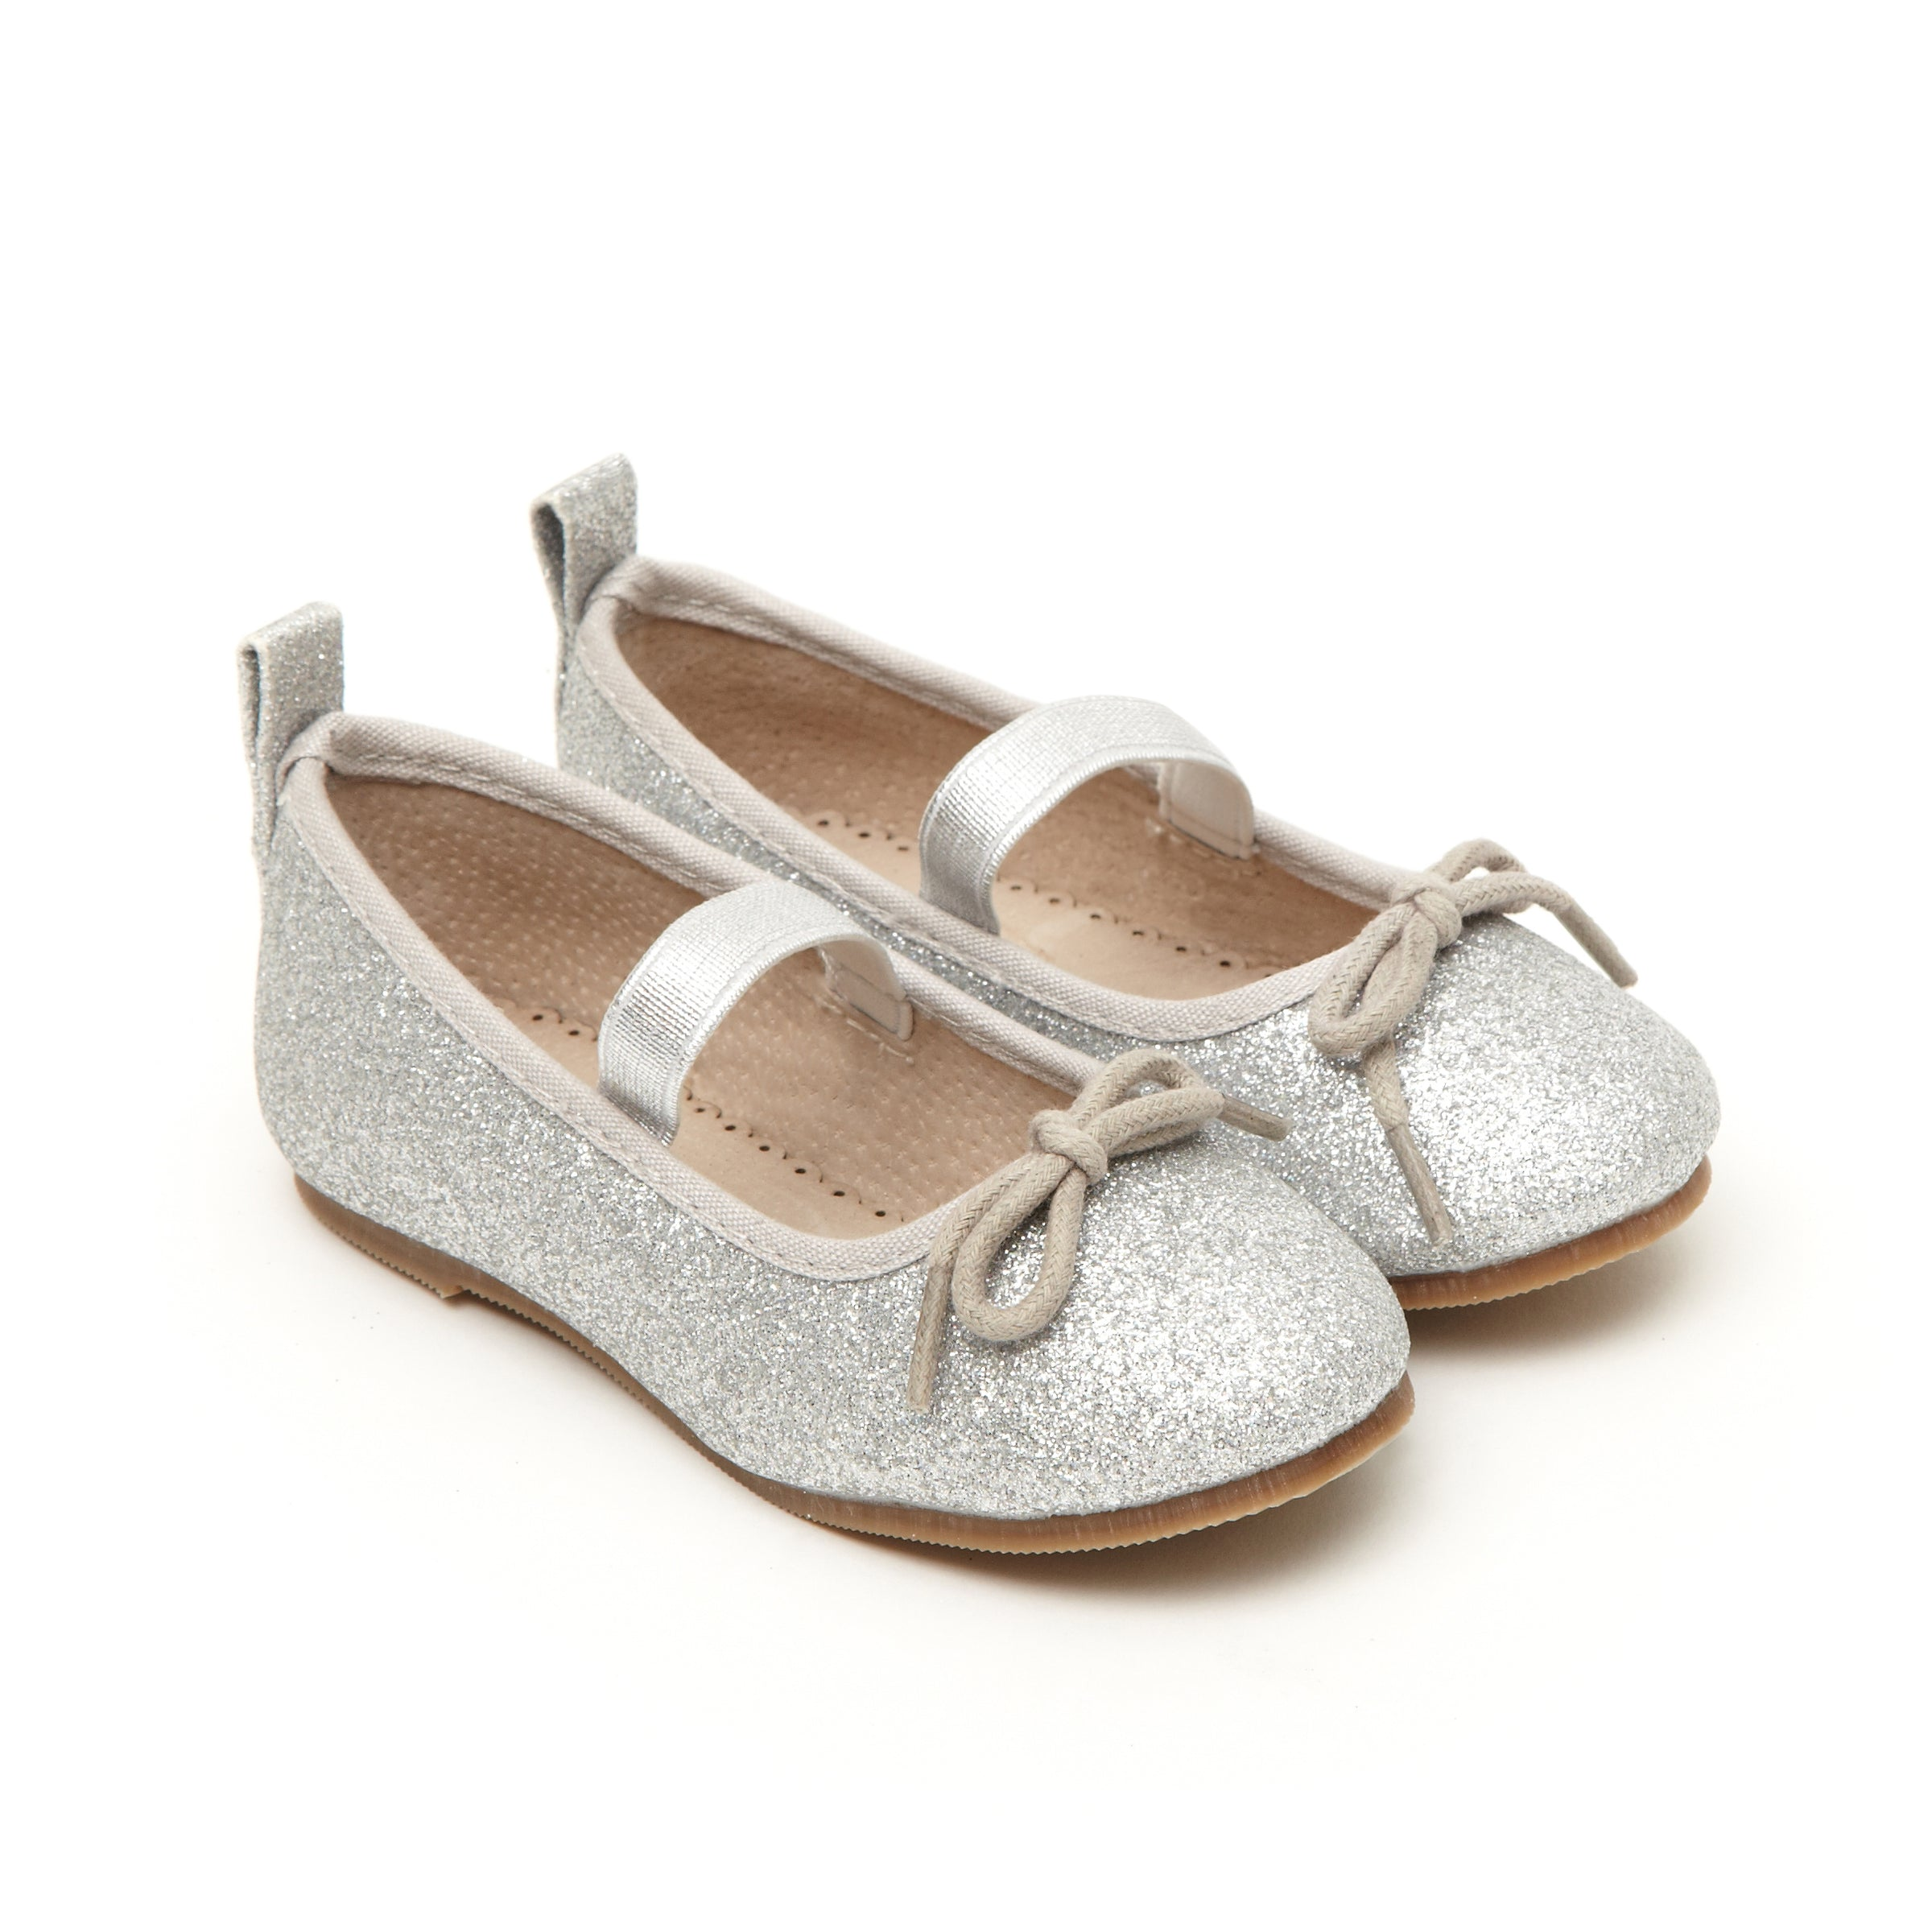 3c462210b9f2 Angel s Face Silver Toddler Girls Ballet Pump Shoes - LAZY FRANCIS - Shop  in store at